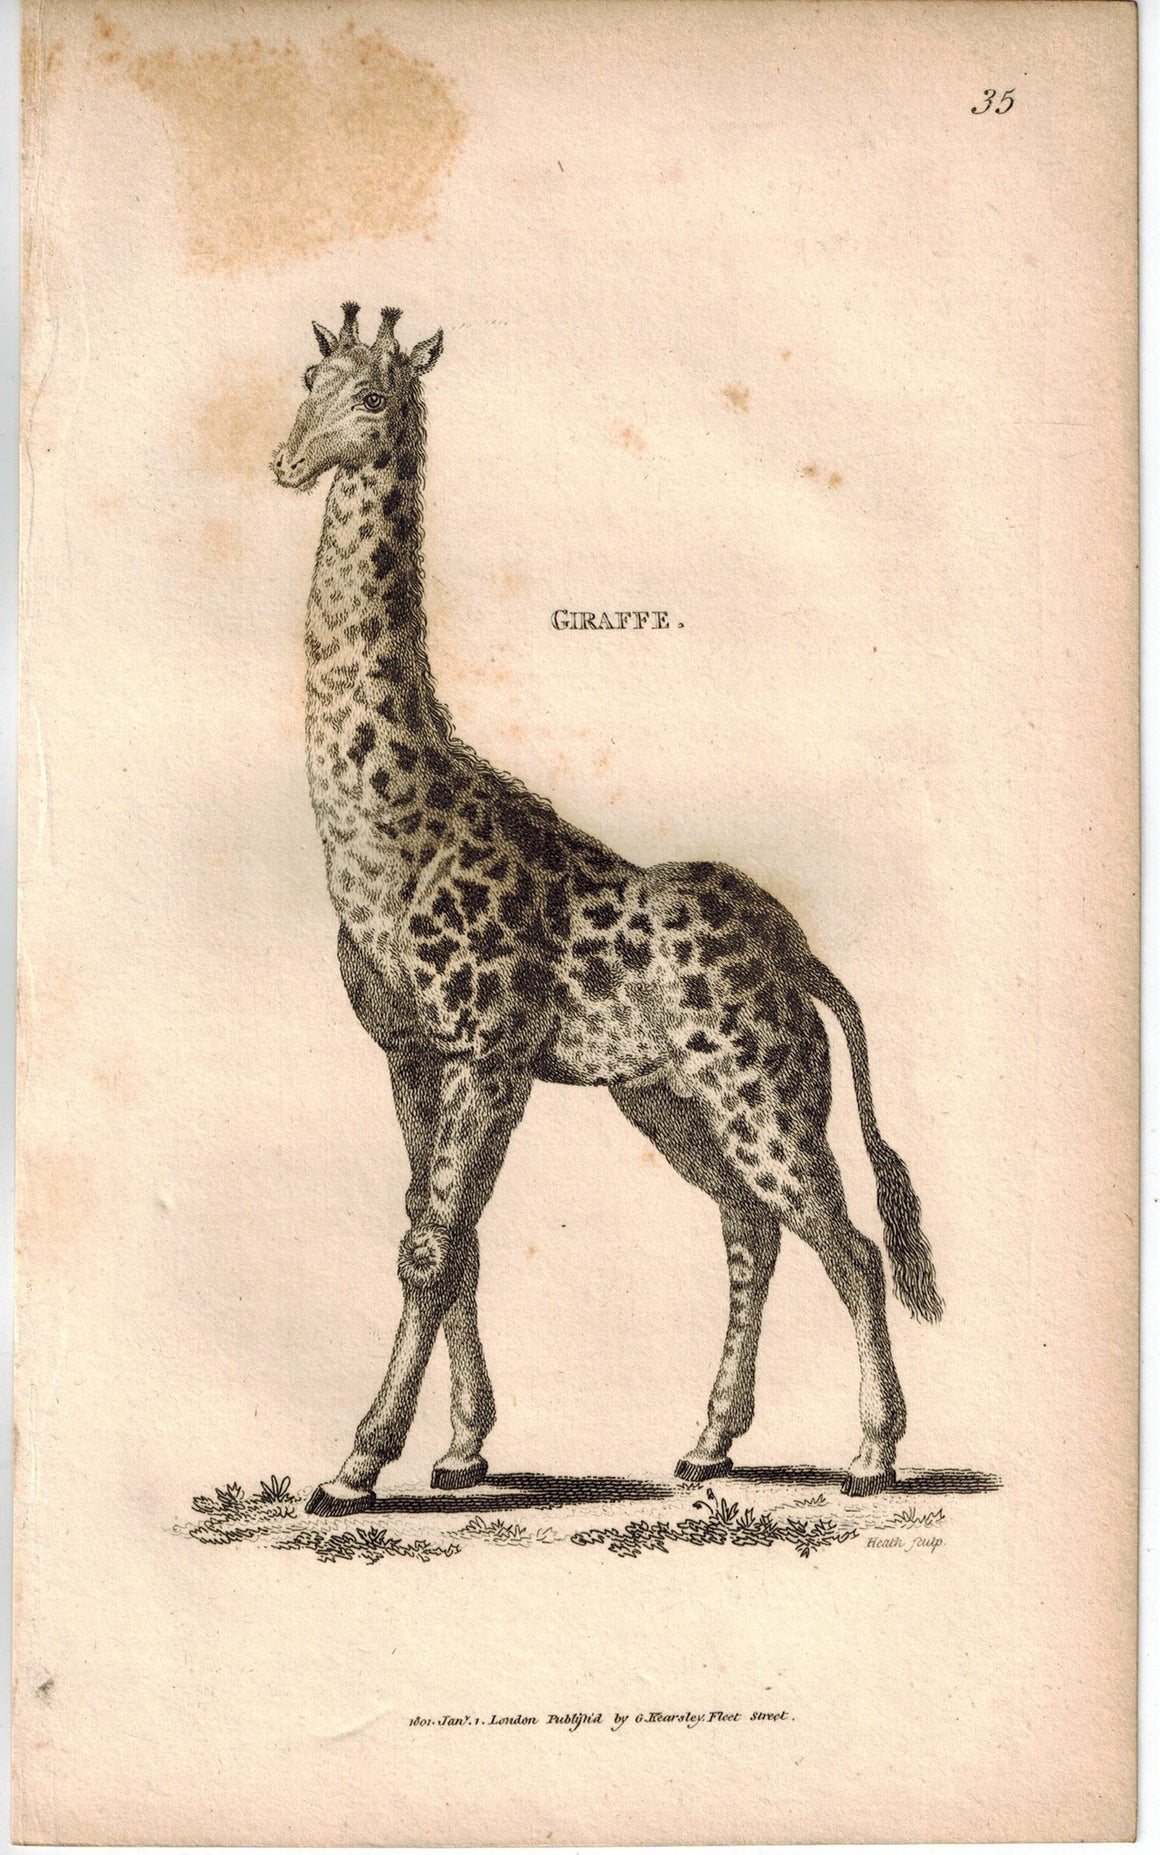 Giraffe Animal Antique Print 1809 George Shaw Original Engraving